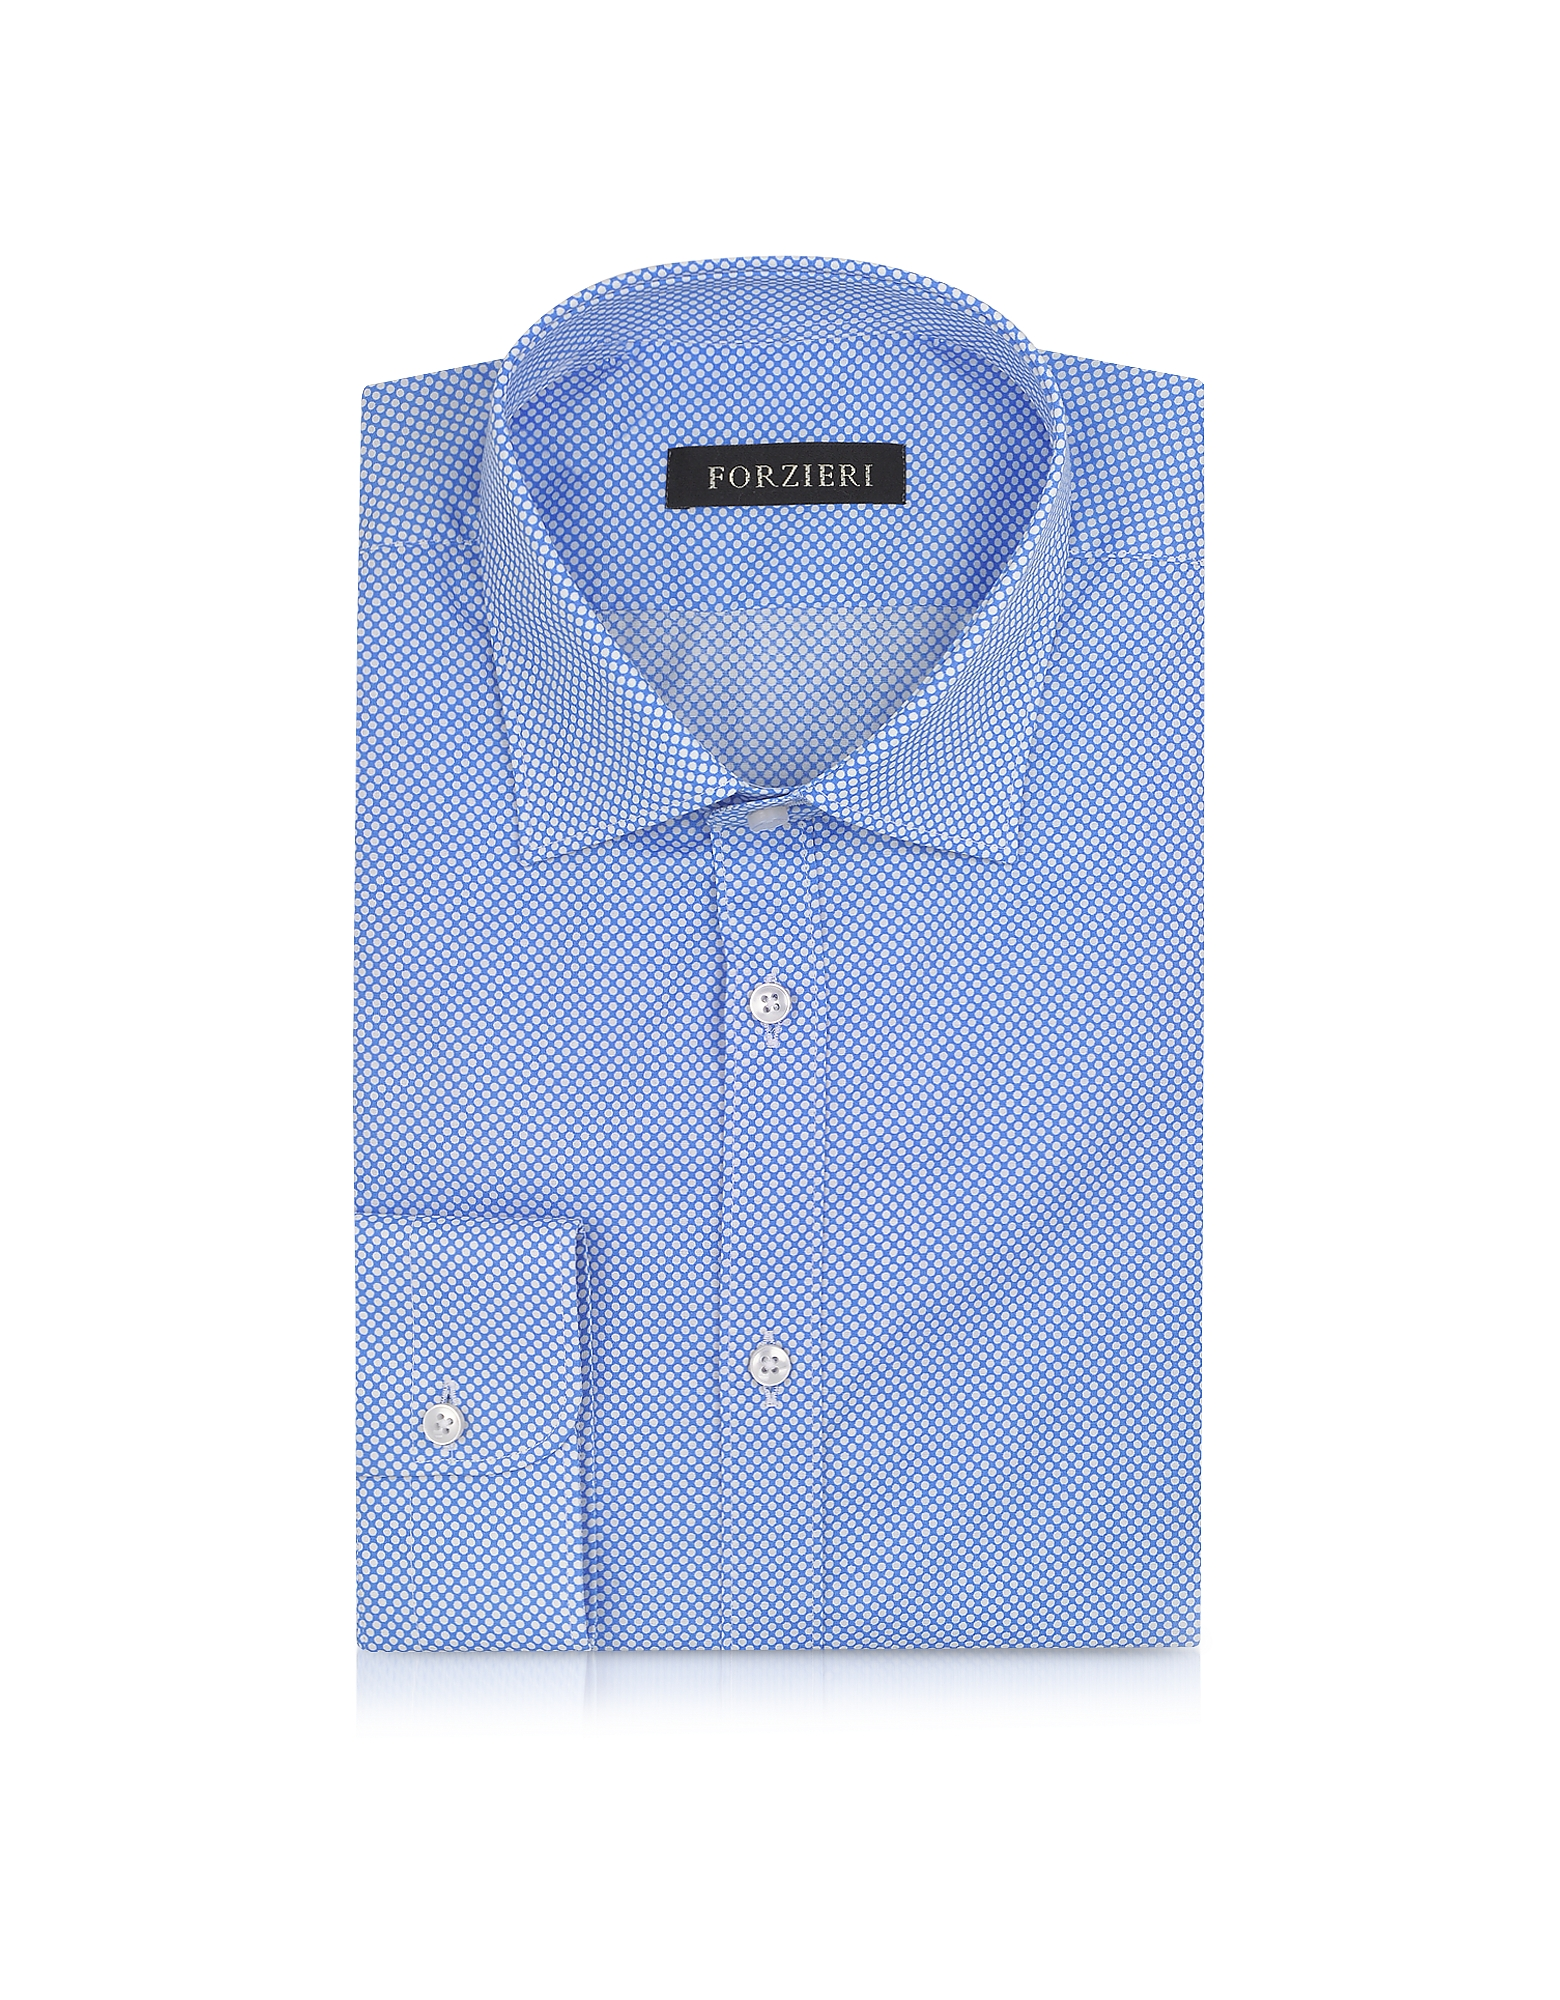 Light Blue and White Polkadot Cotton Slim Fit Shirt